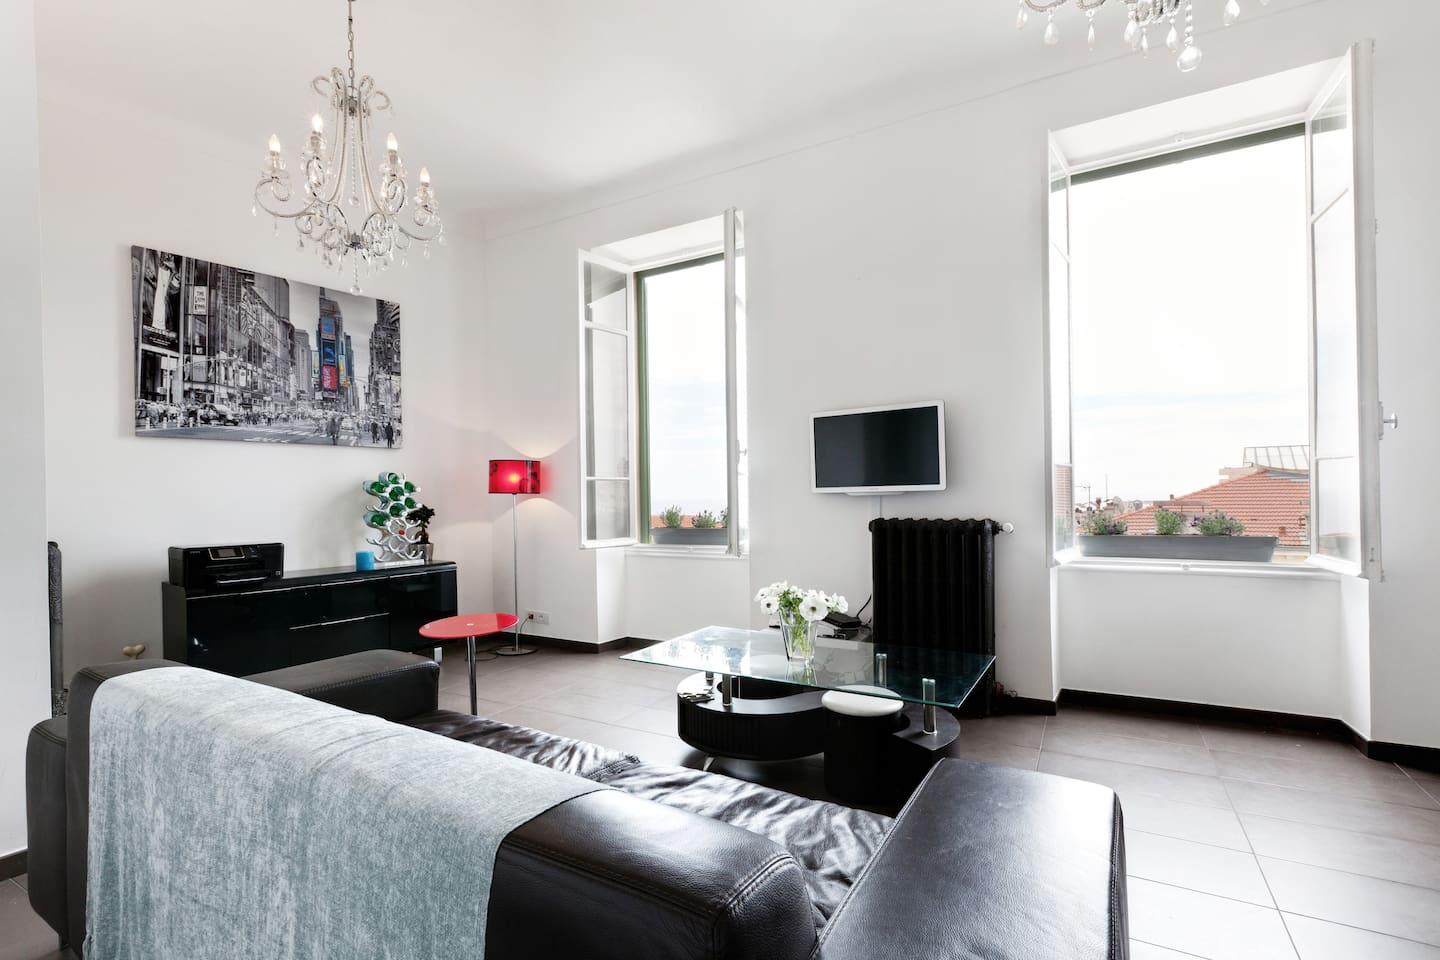 Airconditioning, WIFI, SEA VIEW!!   and just a 5 minute walk to the Cafe de Paris, famous Casino and the very centre of Monte Carlo. The living area  is light and airy with a contemporary feel Aircon/heating. Its a great place.